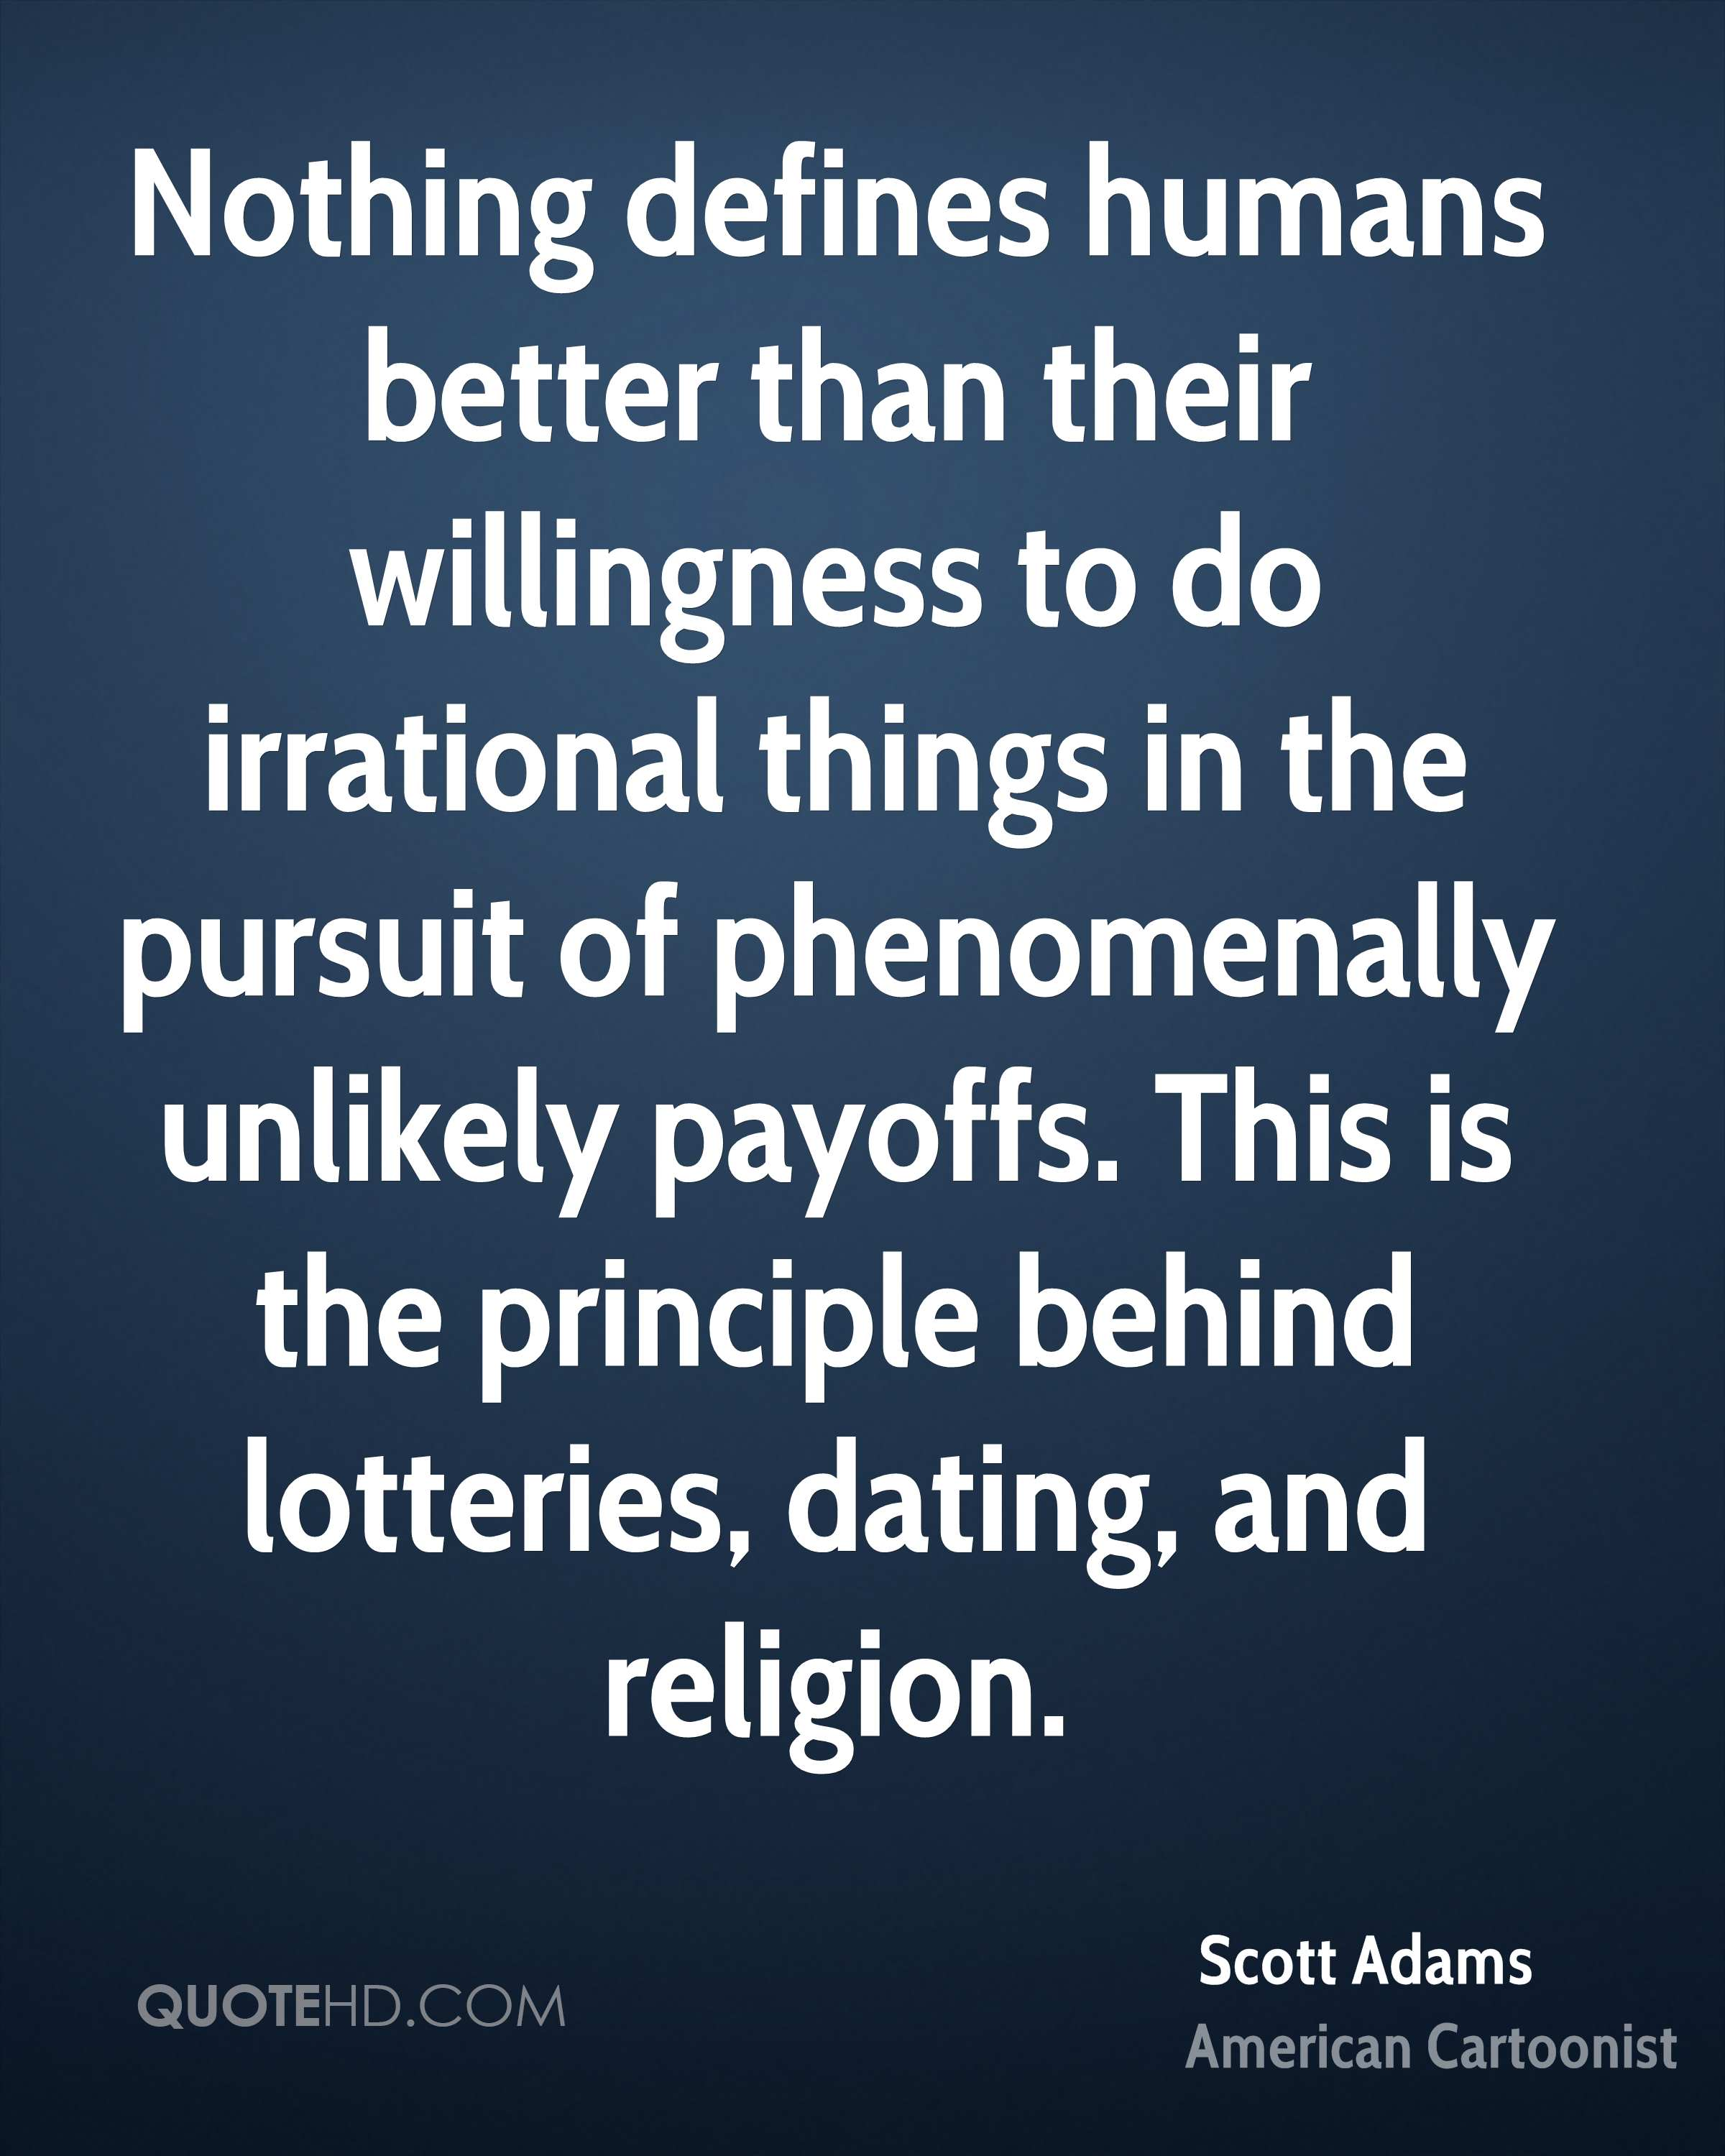 Nothing defines humans better than their willingness to do irrational things in the pursuit of phenomenally unlikely payoffs. This is the principle behind lotteries, dating, and religion.